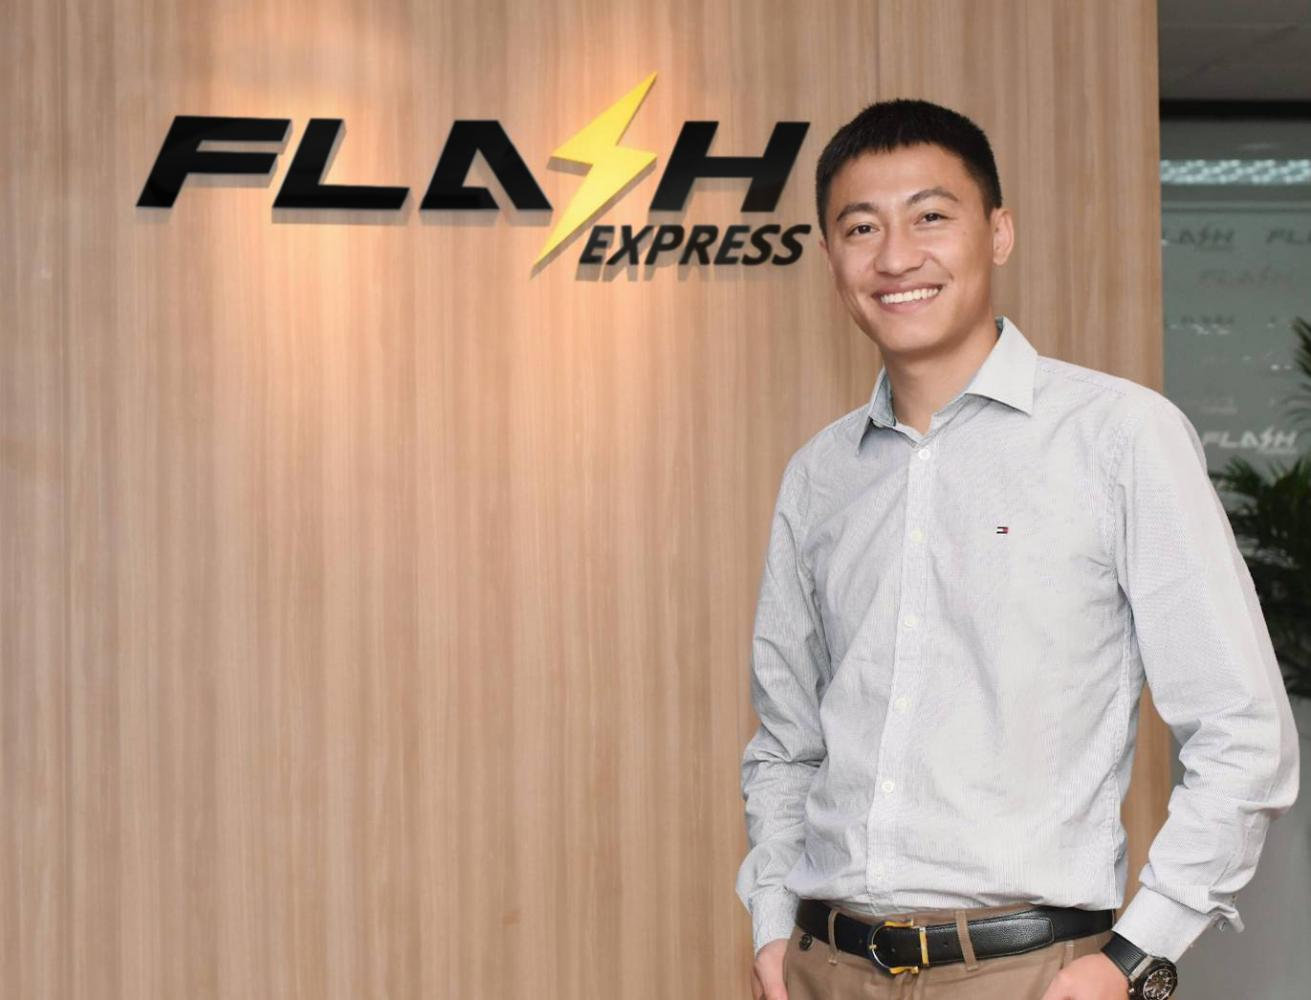 Komsan Lee, CEO of Flash Express says the pandemic and the rise in e-commerce has increased demand for delivery services.